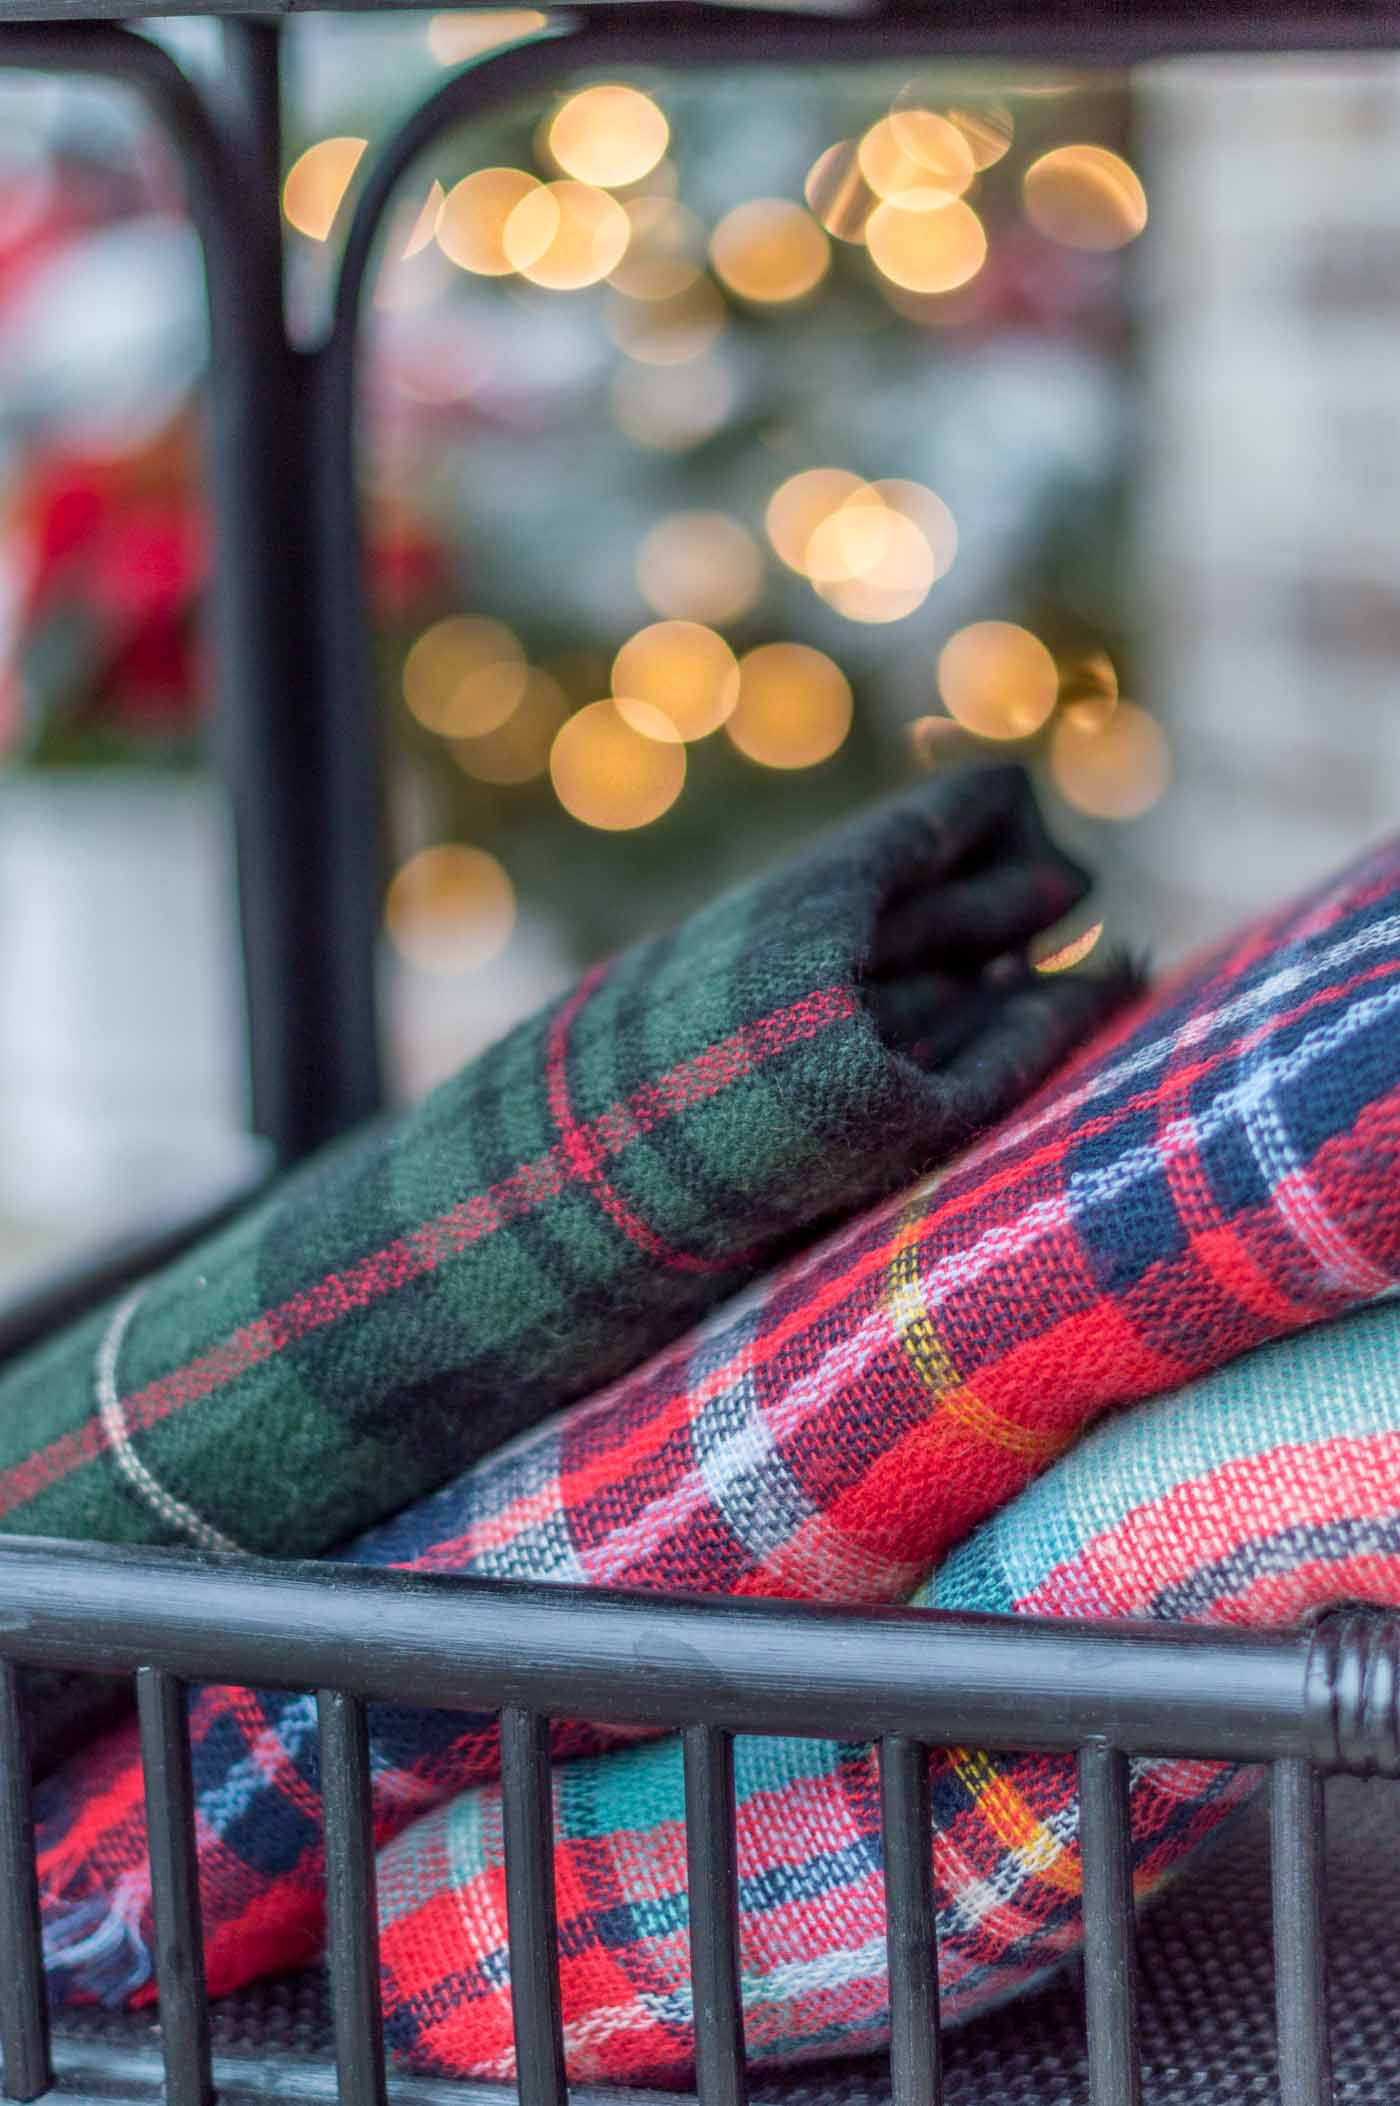 Cozy Christmas Porch Decor with Tartan and Plaid Blankets